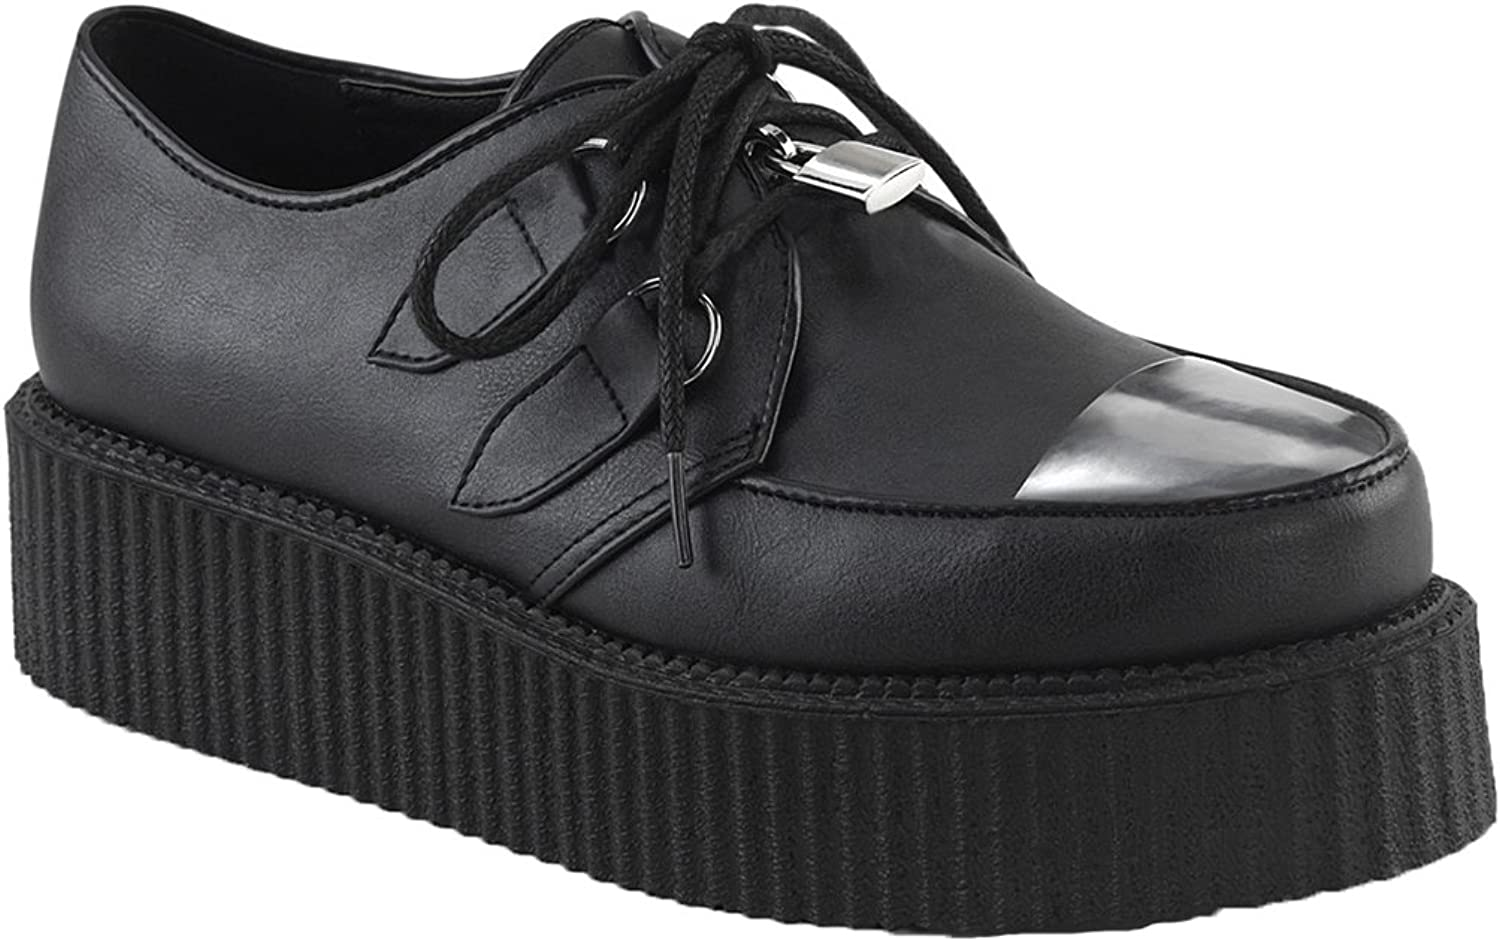 Demonia Mens V-CREEPER-515 BVL shoes